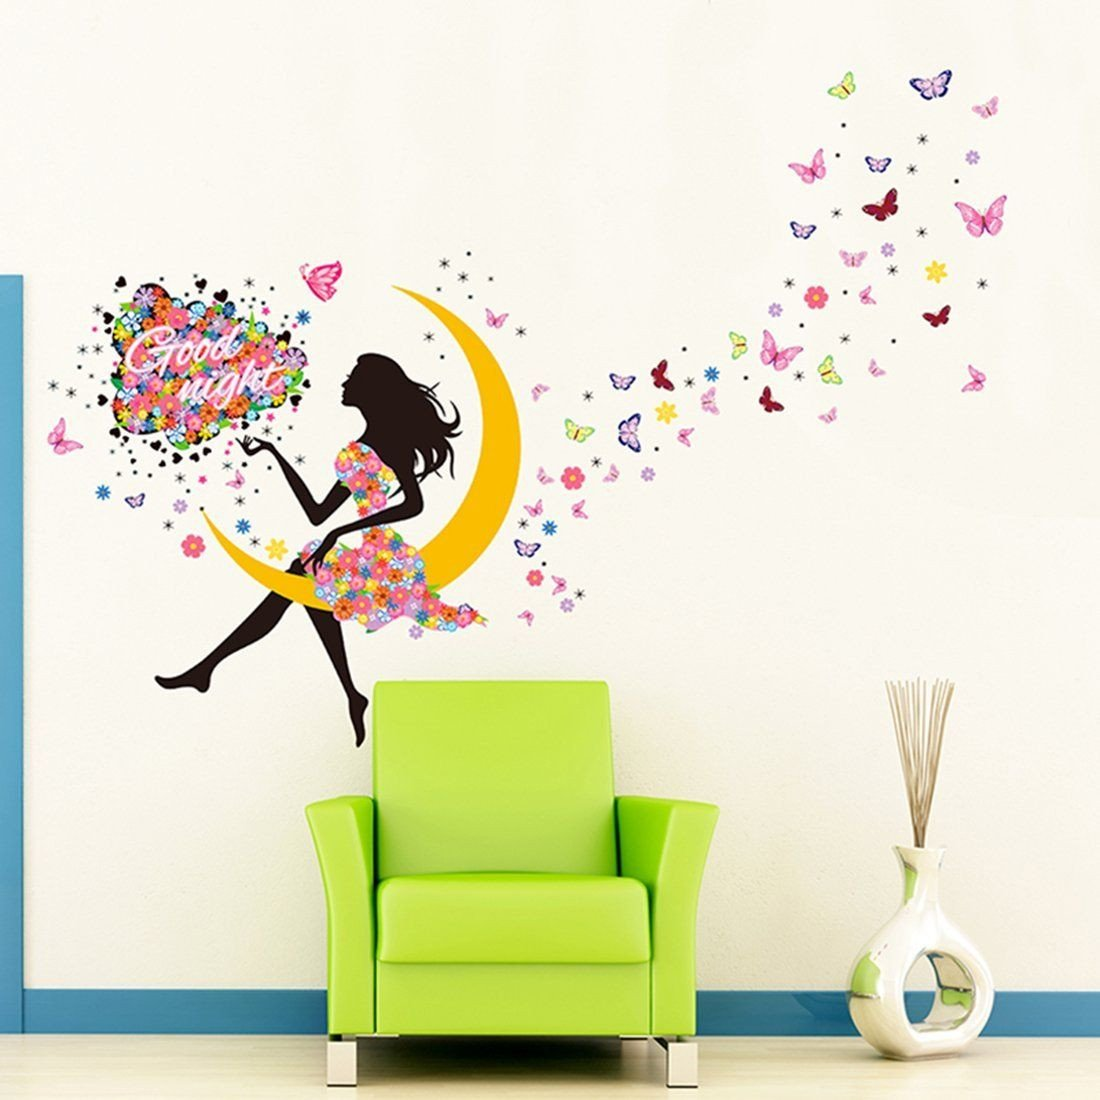 Childrens Bedroom Wall Stickers Removable New Amazon Yufeng Removable Diy Pvc Wall Sticker Decor